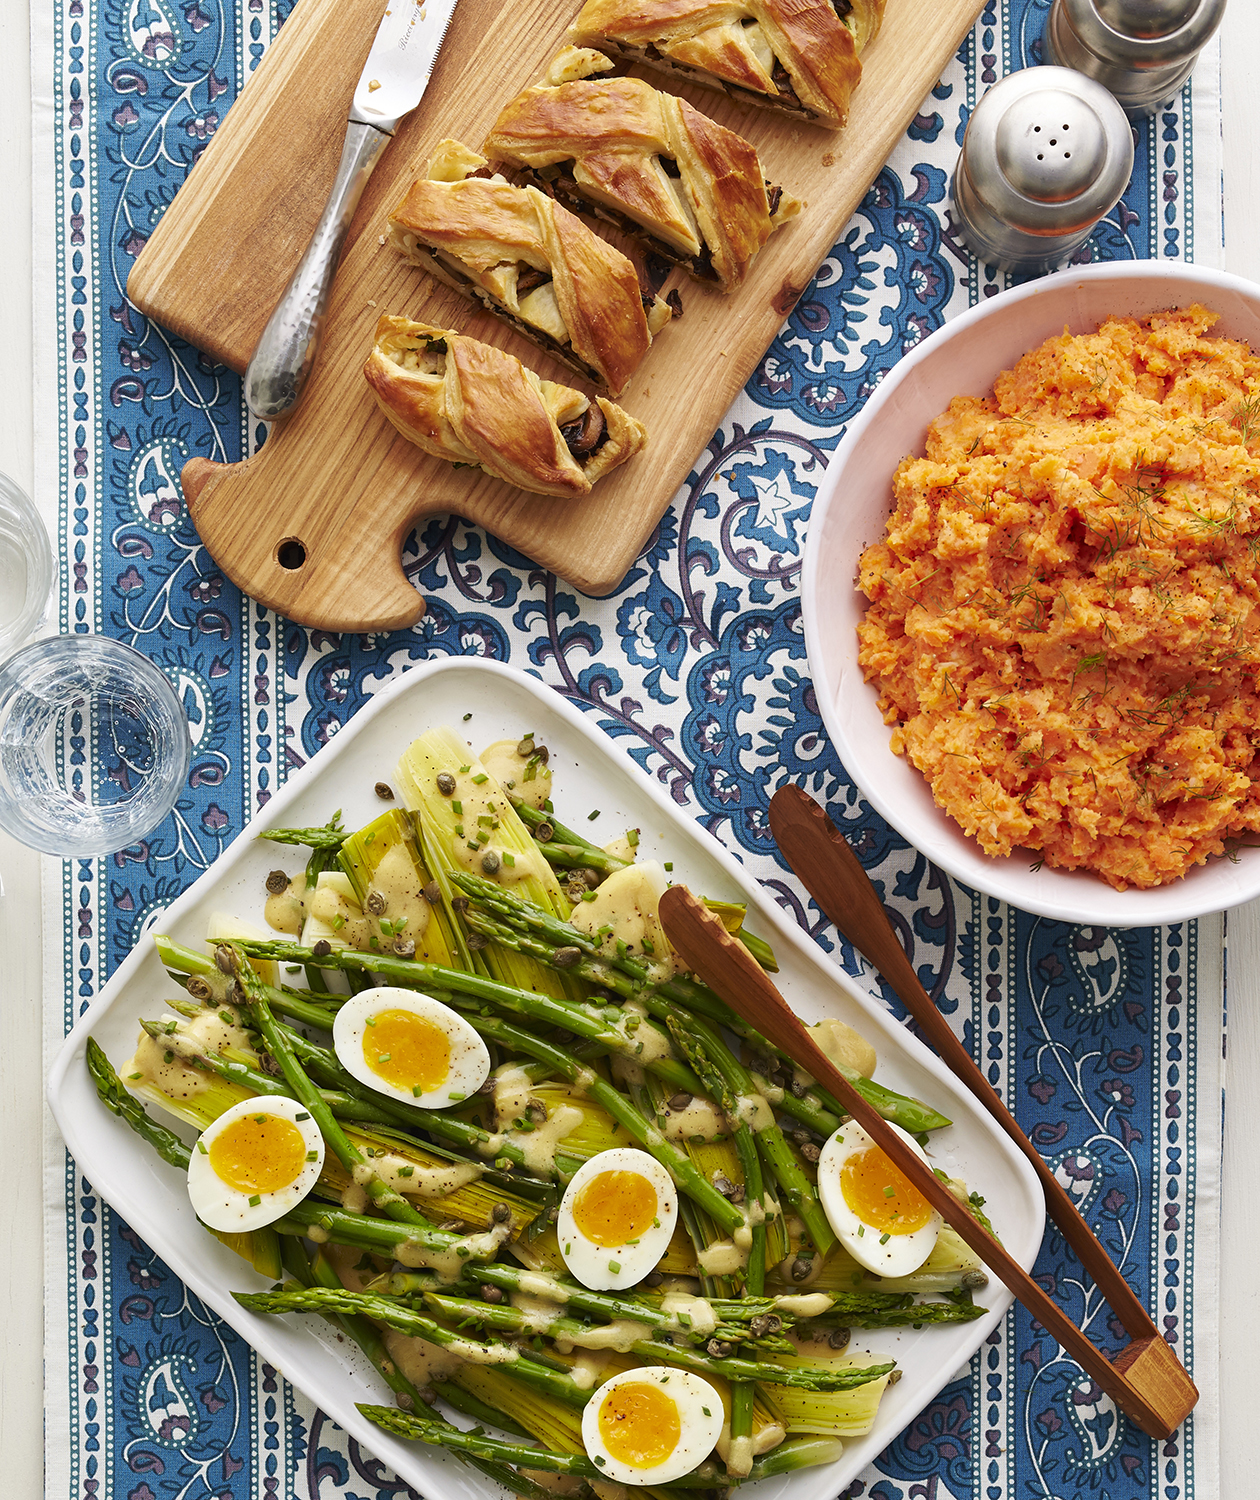 Easter Brunch 2018 Recipes for Every Style   Real Simple